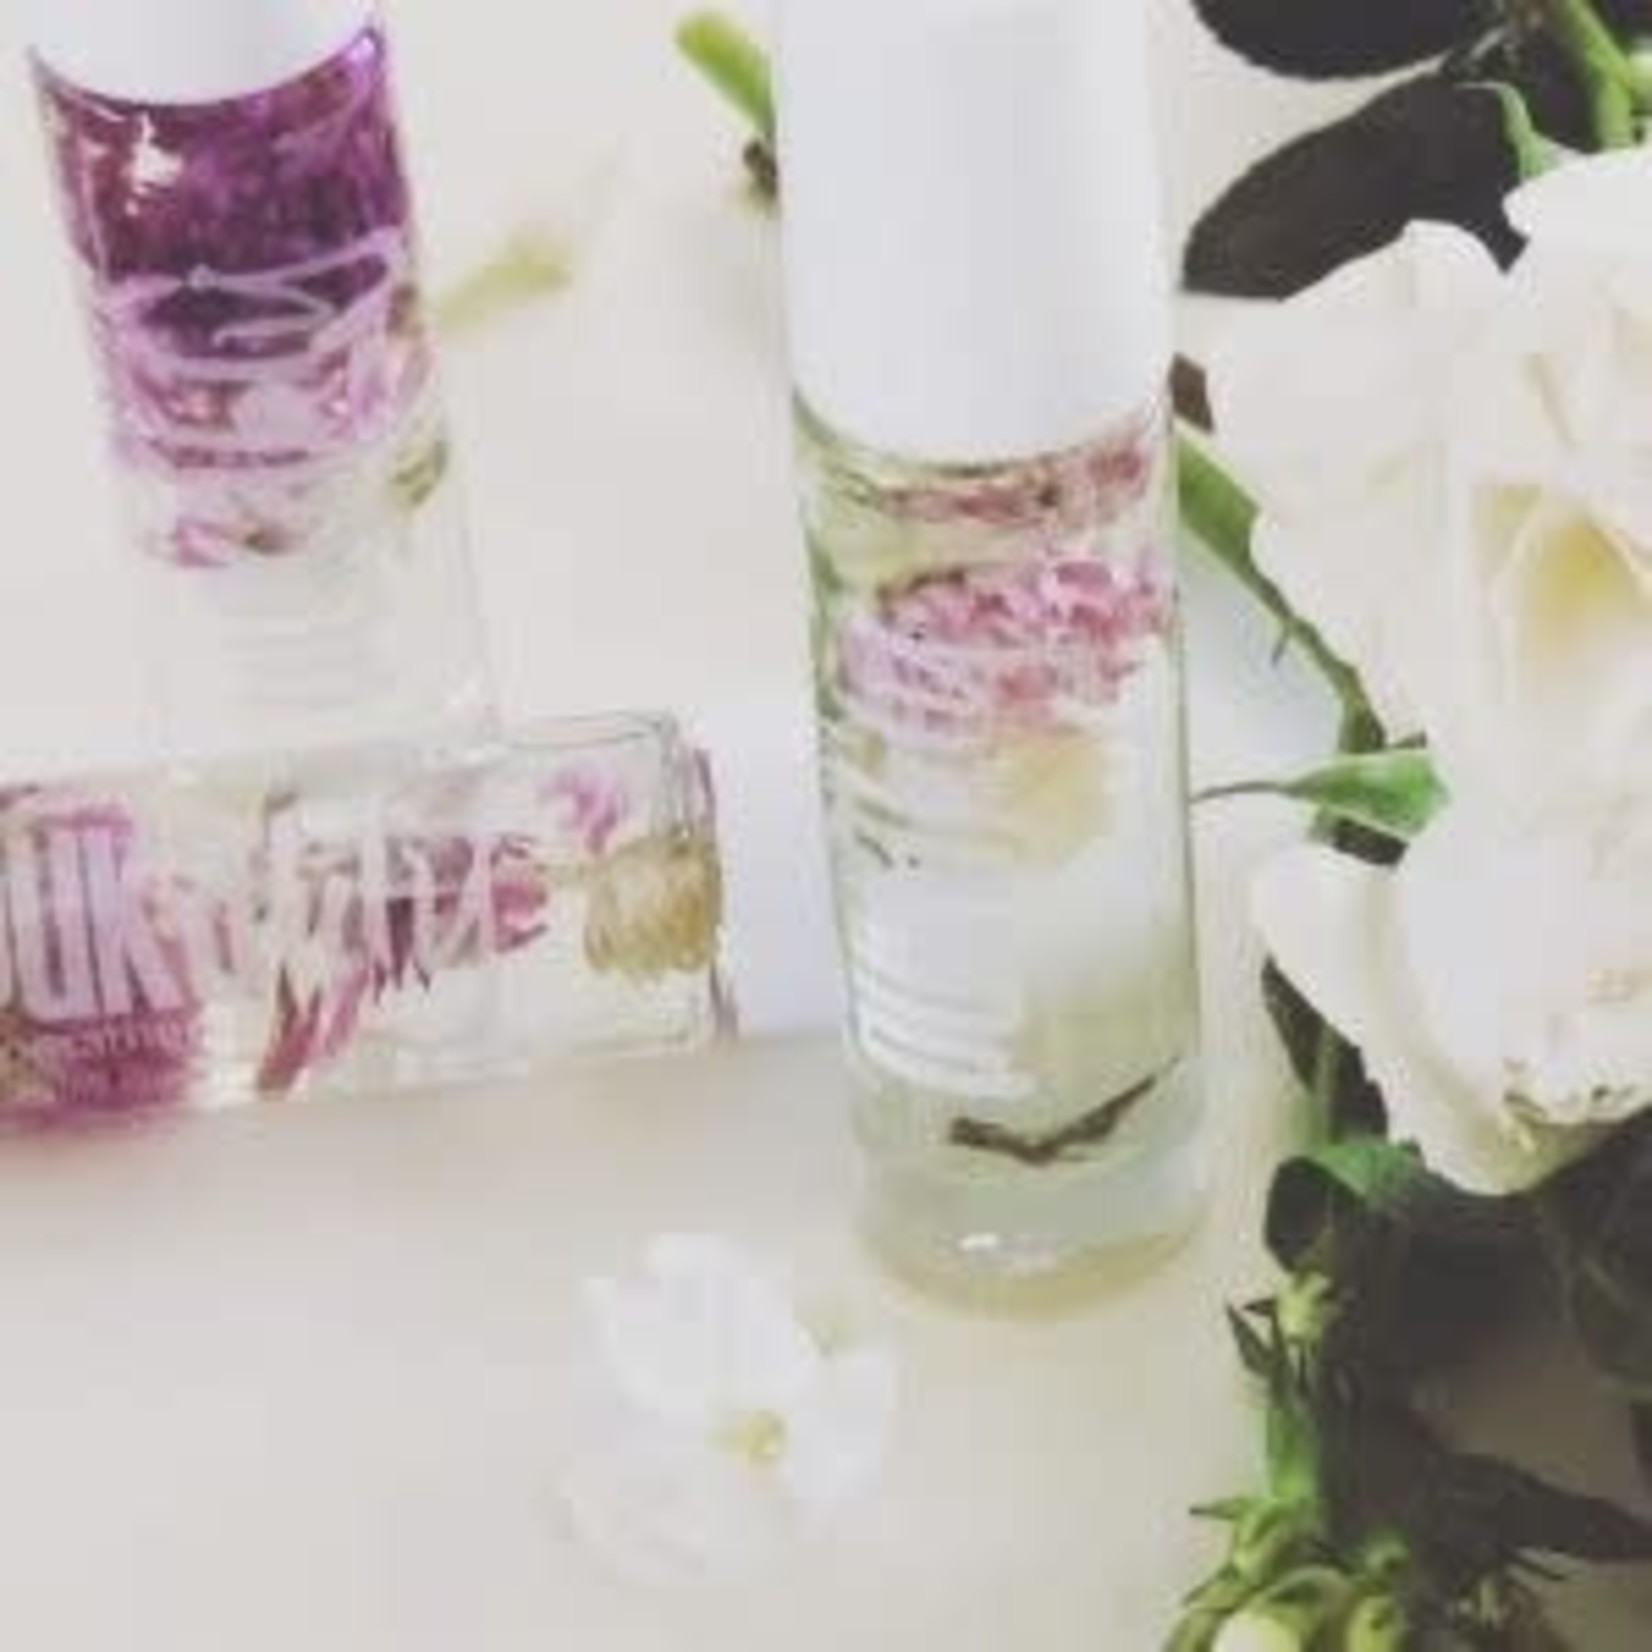 PUKALILY AROMATHERAPY FLORAL ROLLERBALL